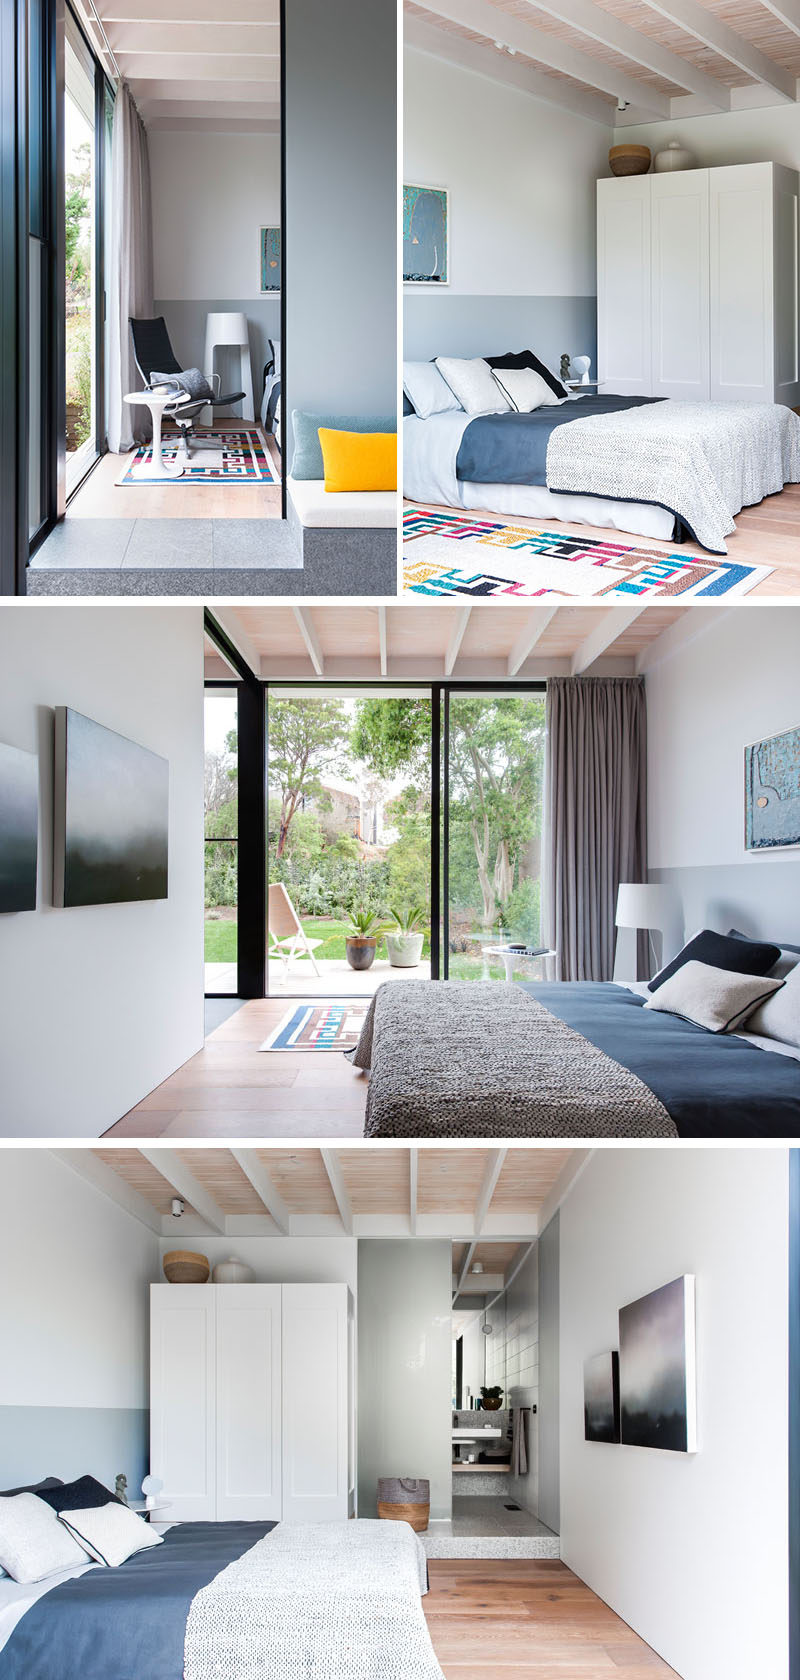 This modern bedroom has a sliding door that leads to the backyard, that provides plenty of natural light to the room that has grey and white walls with wood flooring. #ModernBedroom #BedroomDesign